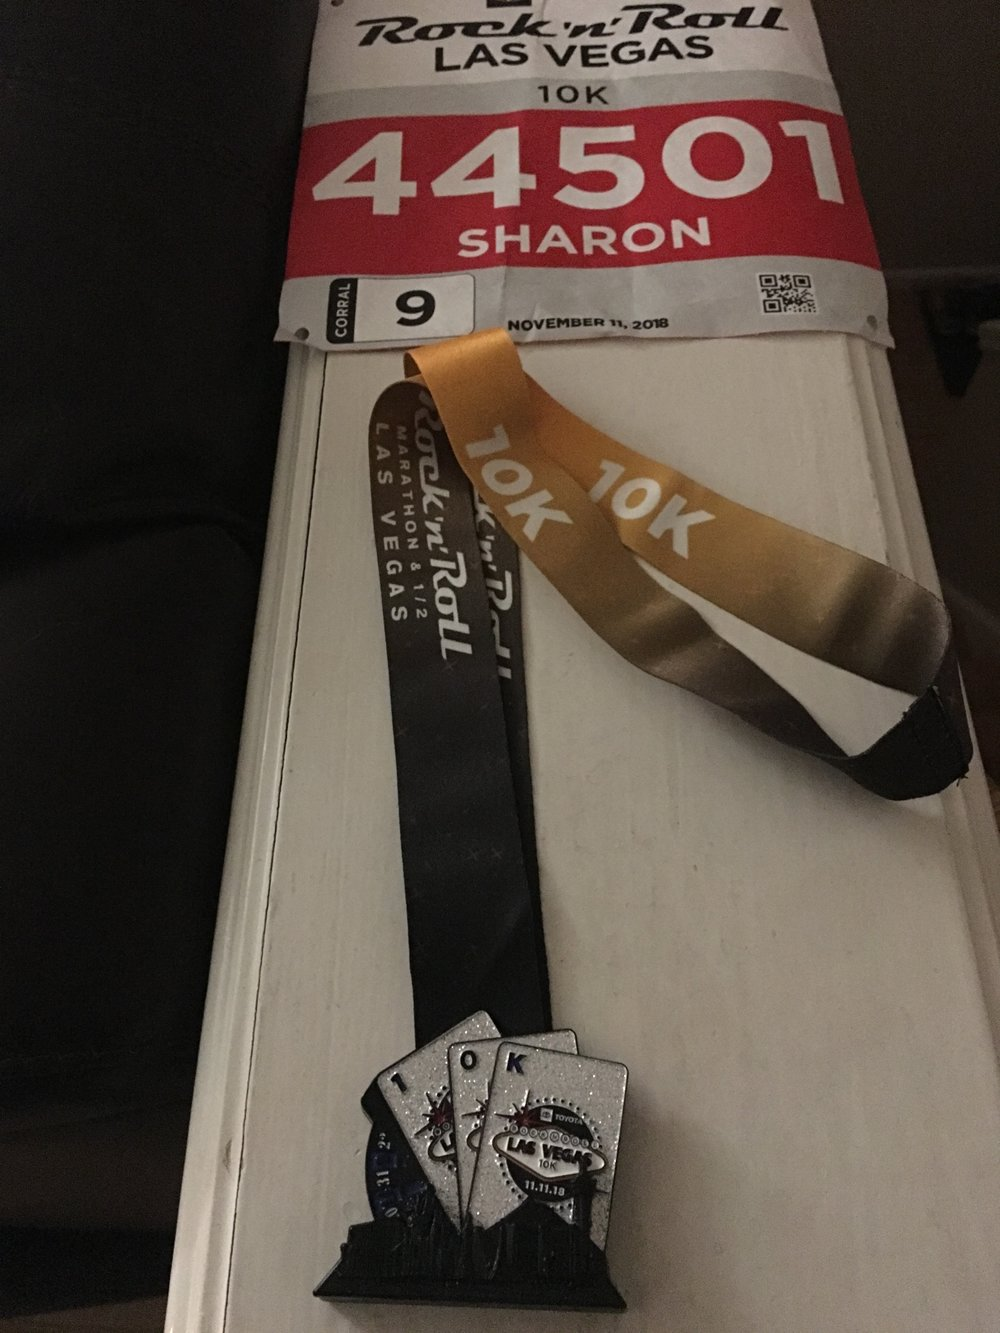 Race bib and 10k medal